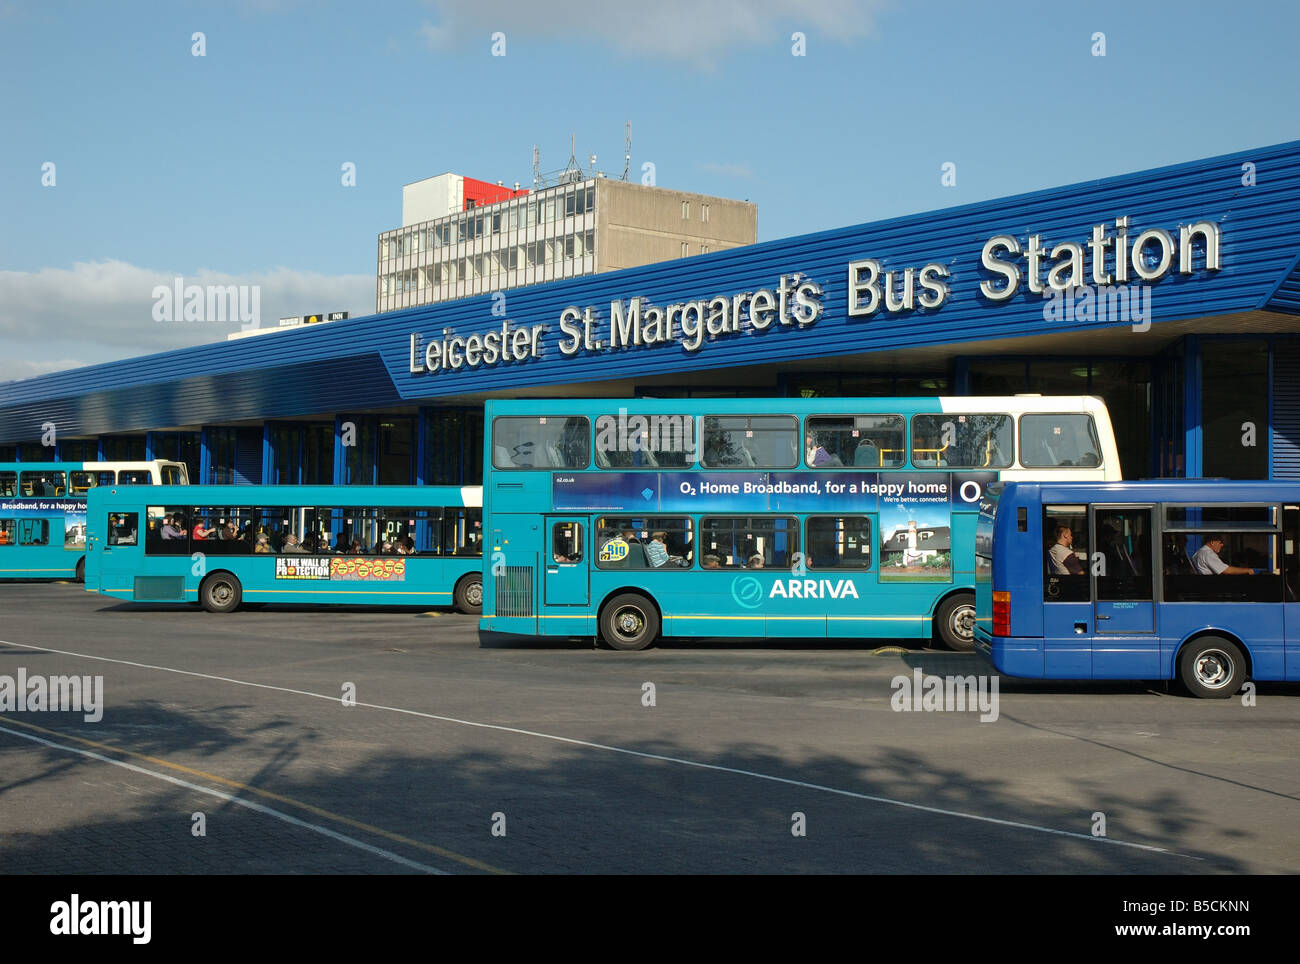 Leicester St Margarets bus station, Burleys Way, Leicester, England, UK - Stock Image